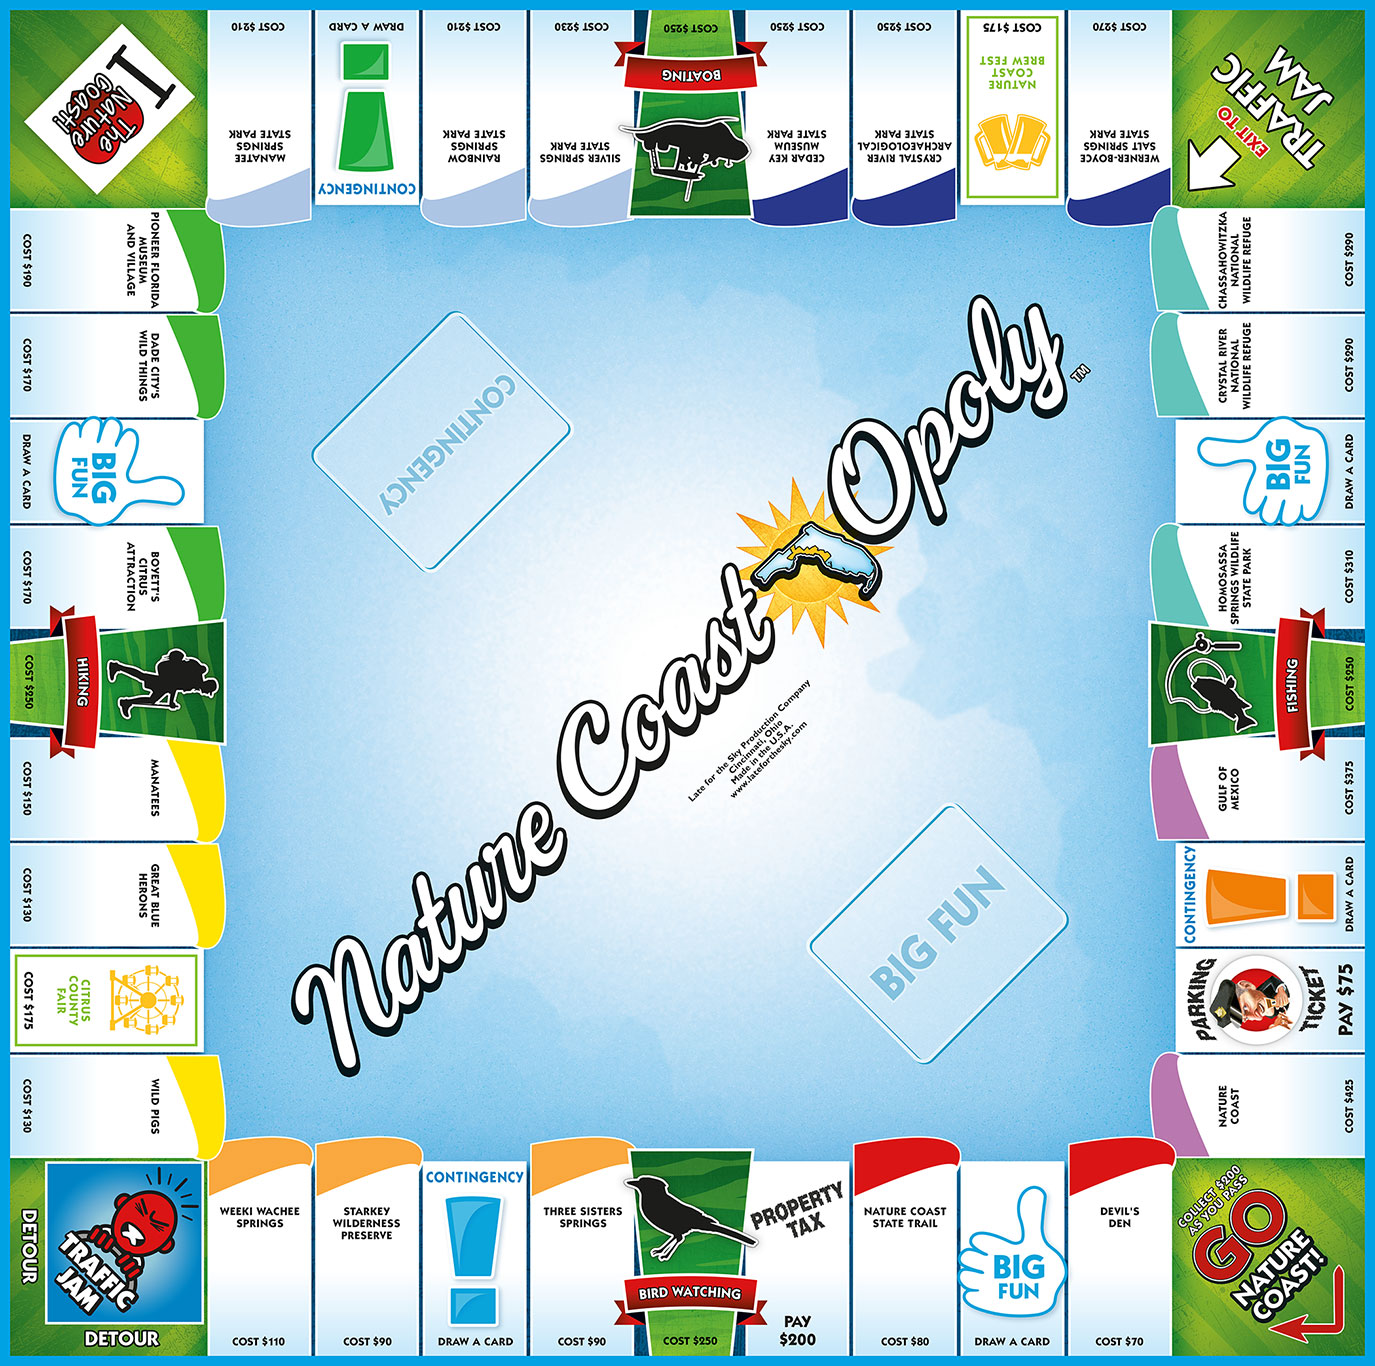 NATURE COAST-OPOLY Board Game